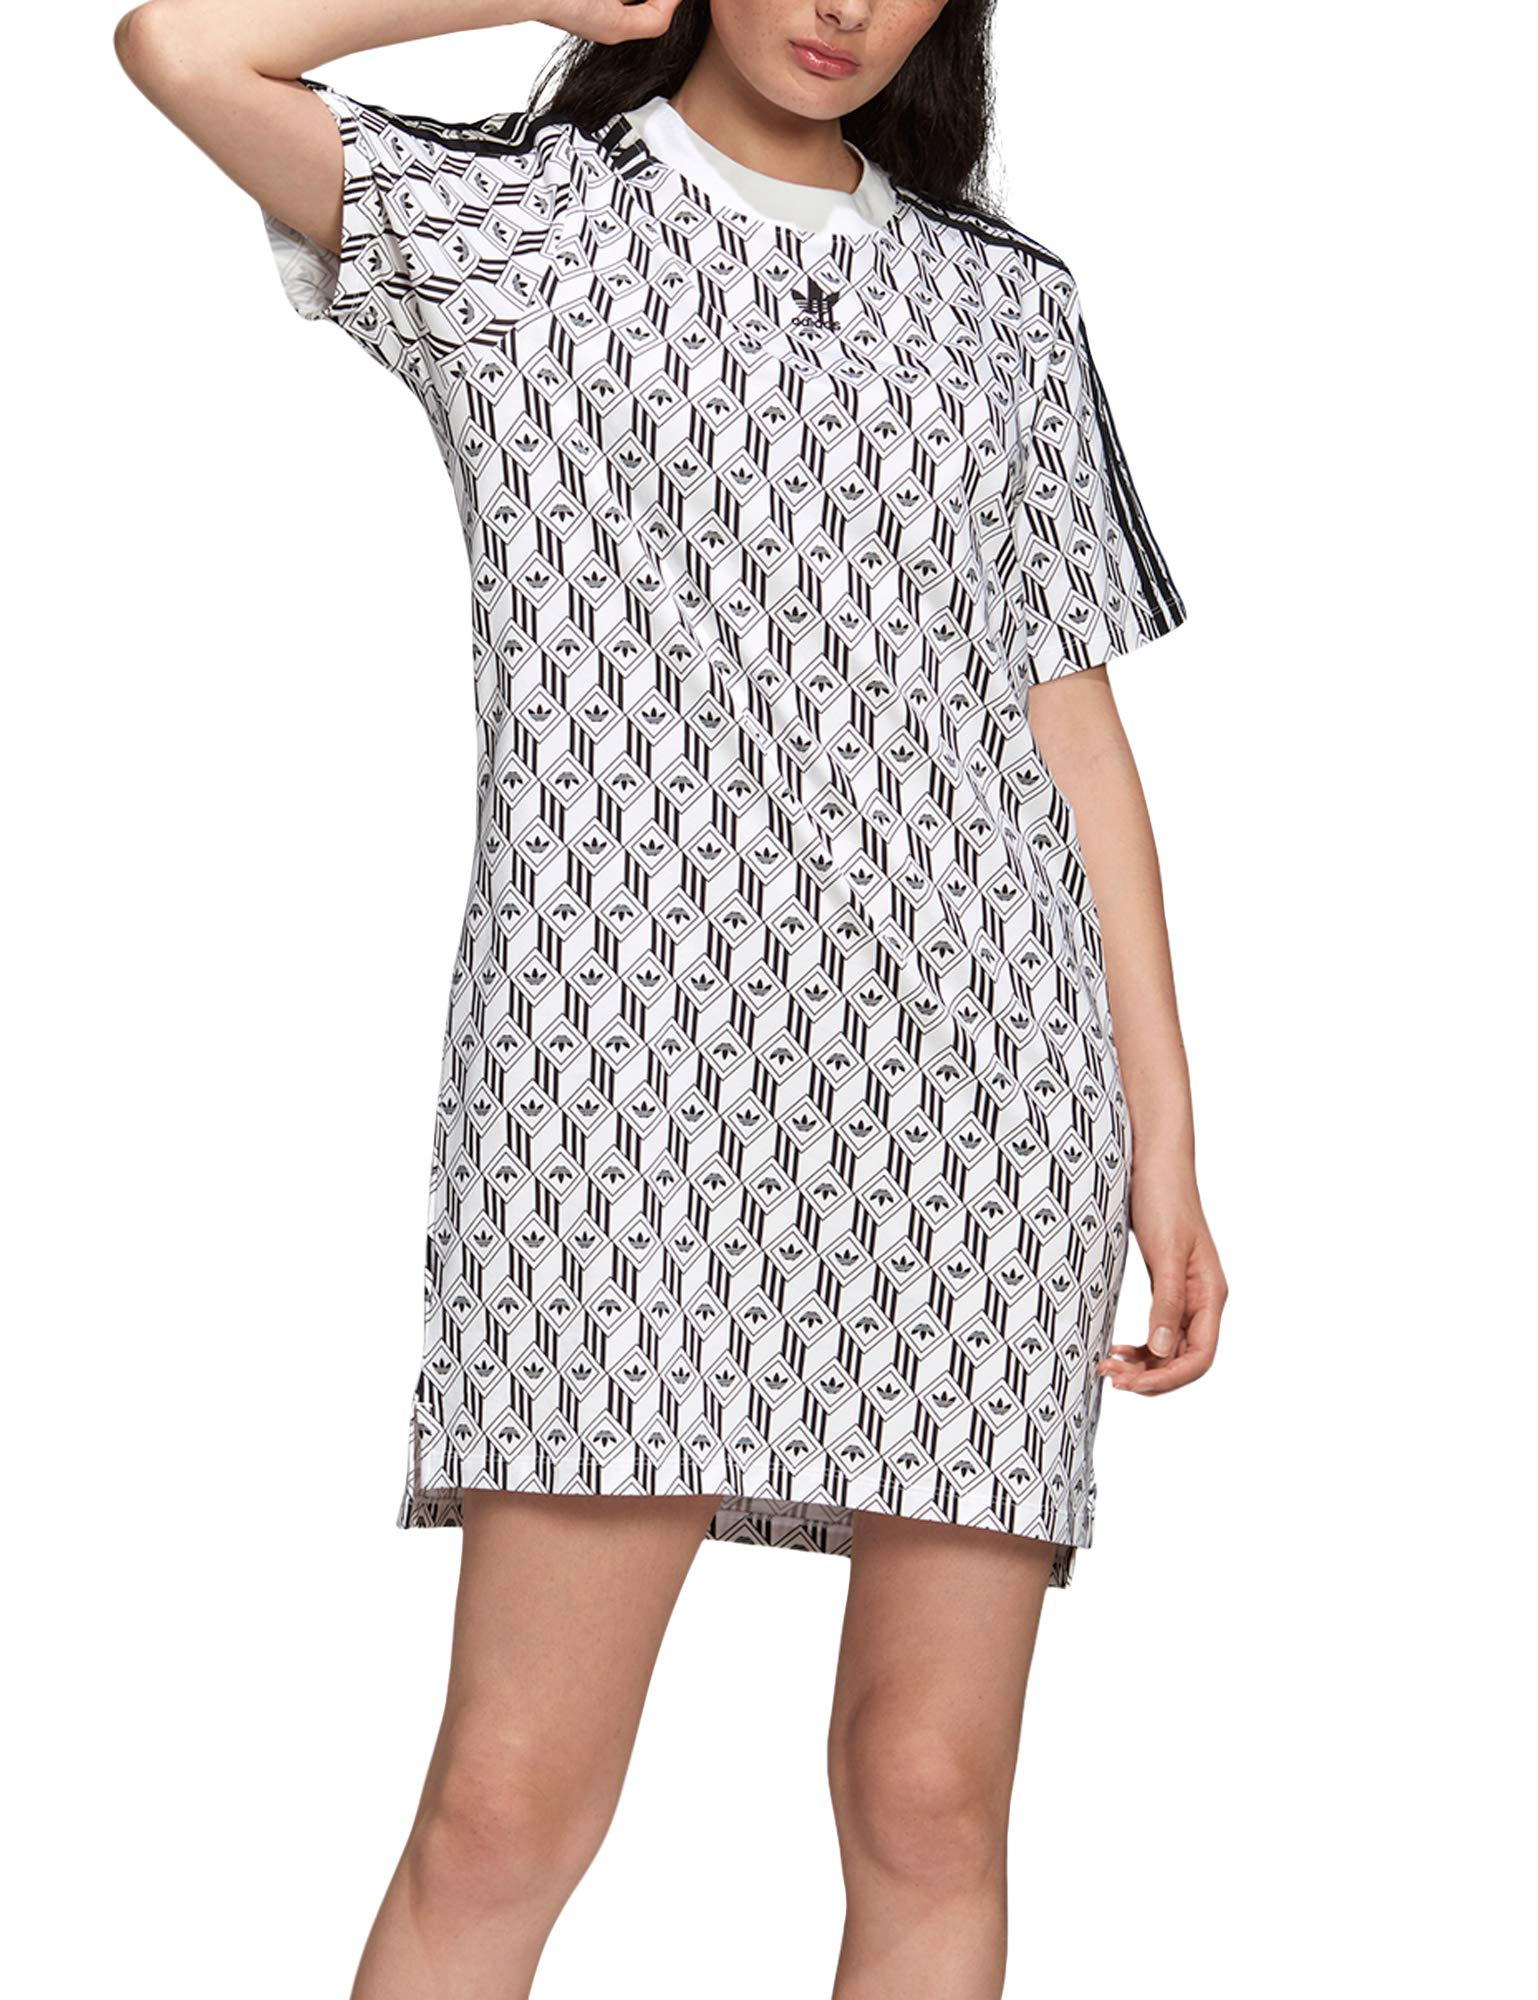 Por favor mira sanar recepción  adidas Women's Tee Dress Dress- Buy Online in Kenya at Desertcart